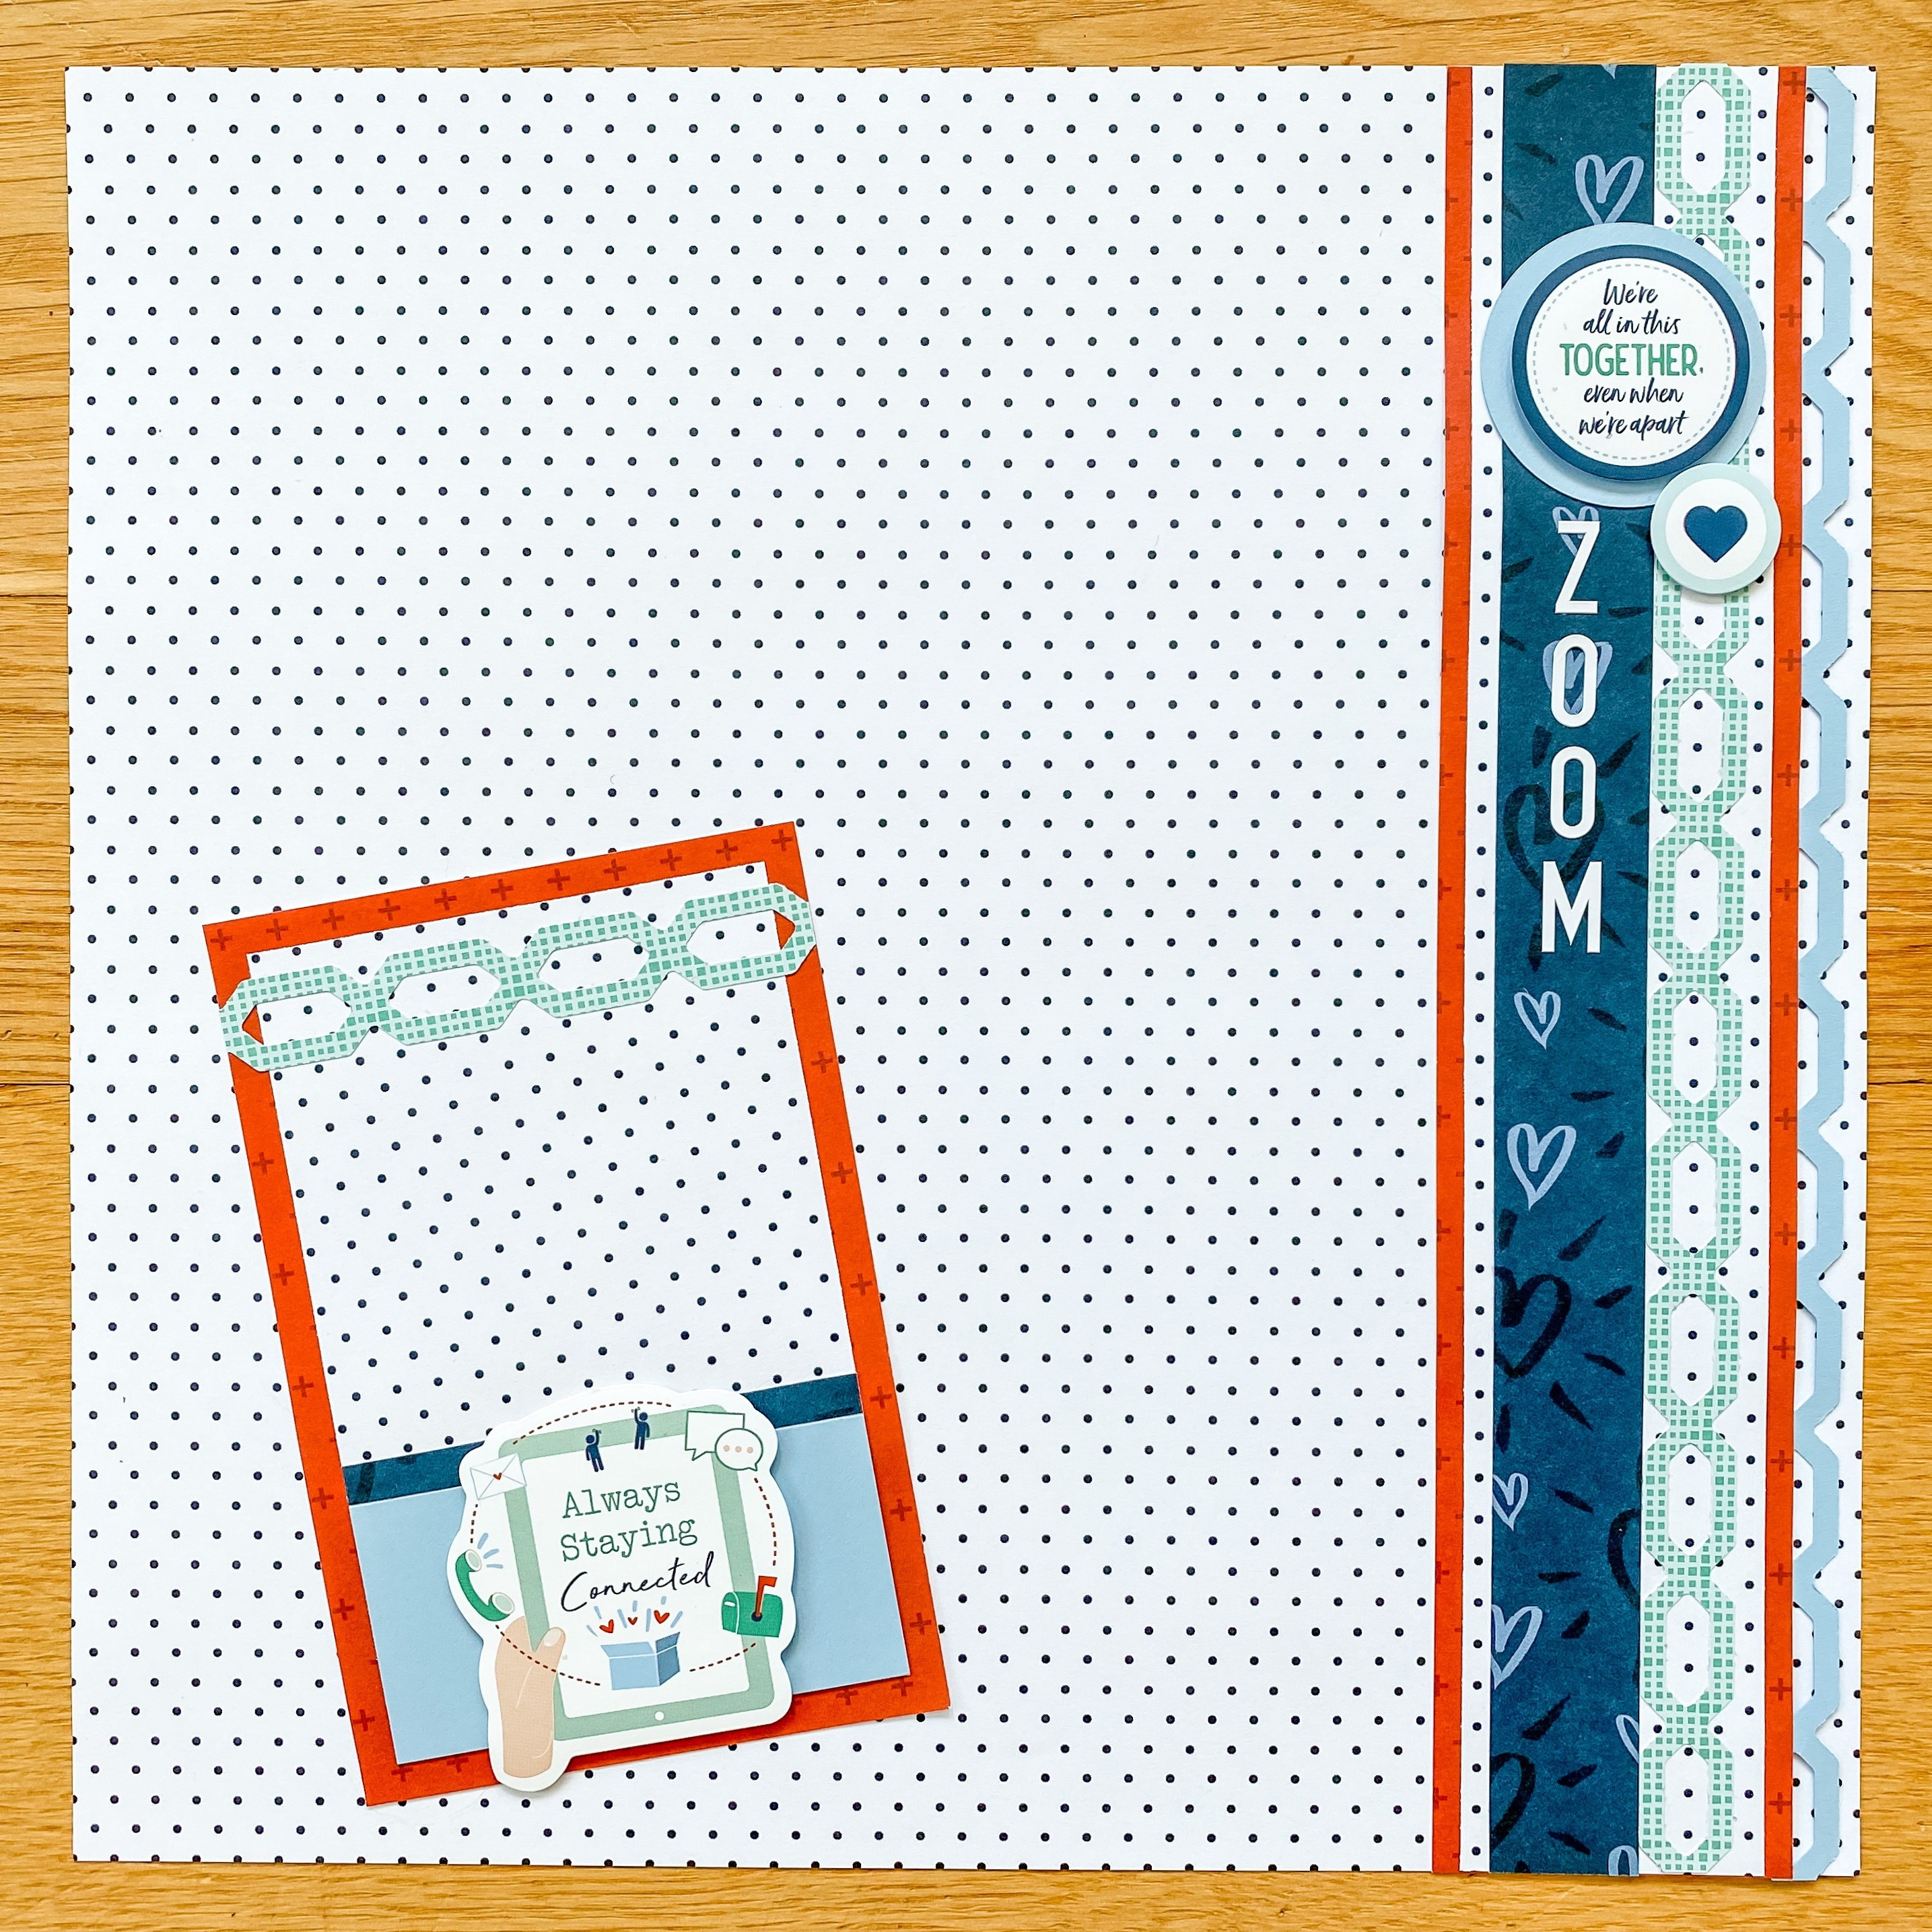 Made-With-Love-Theme-Pack-Covid-19-Borders-Creative-Memories-5